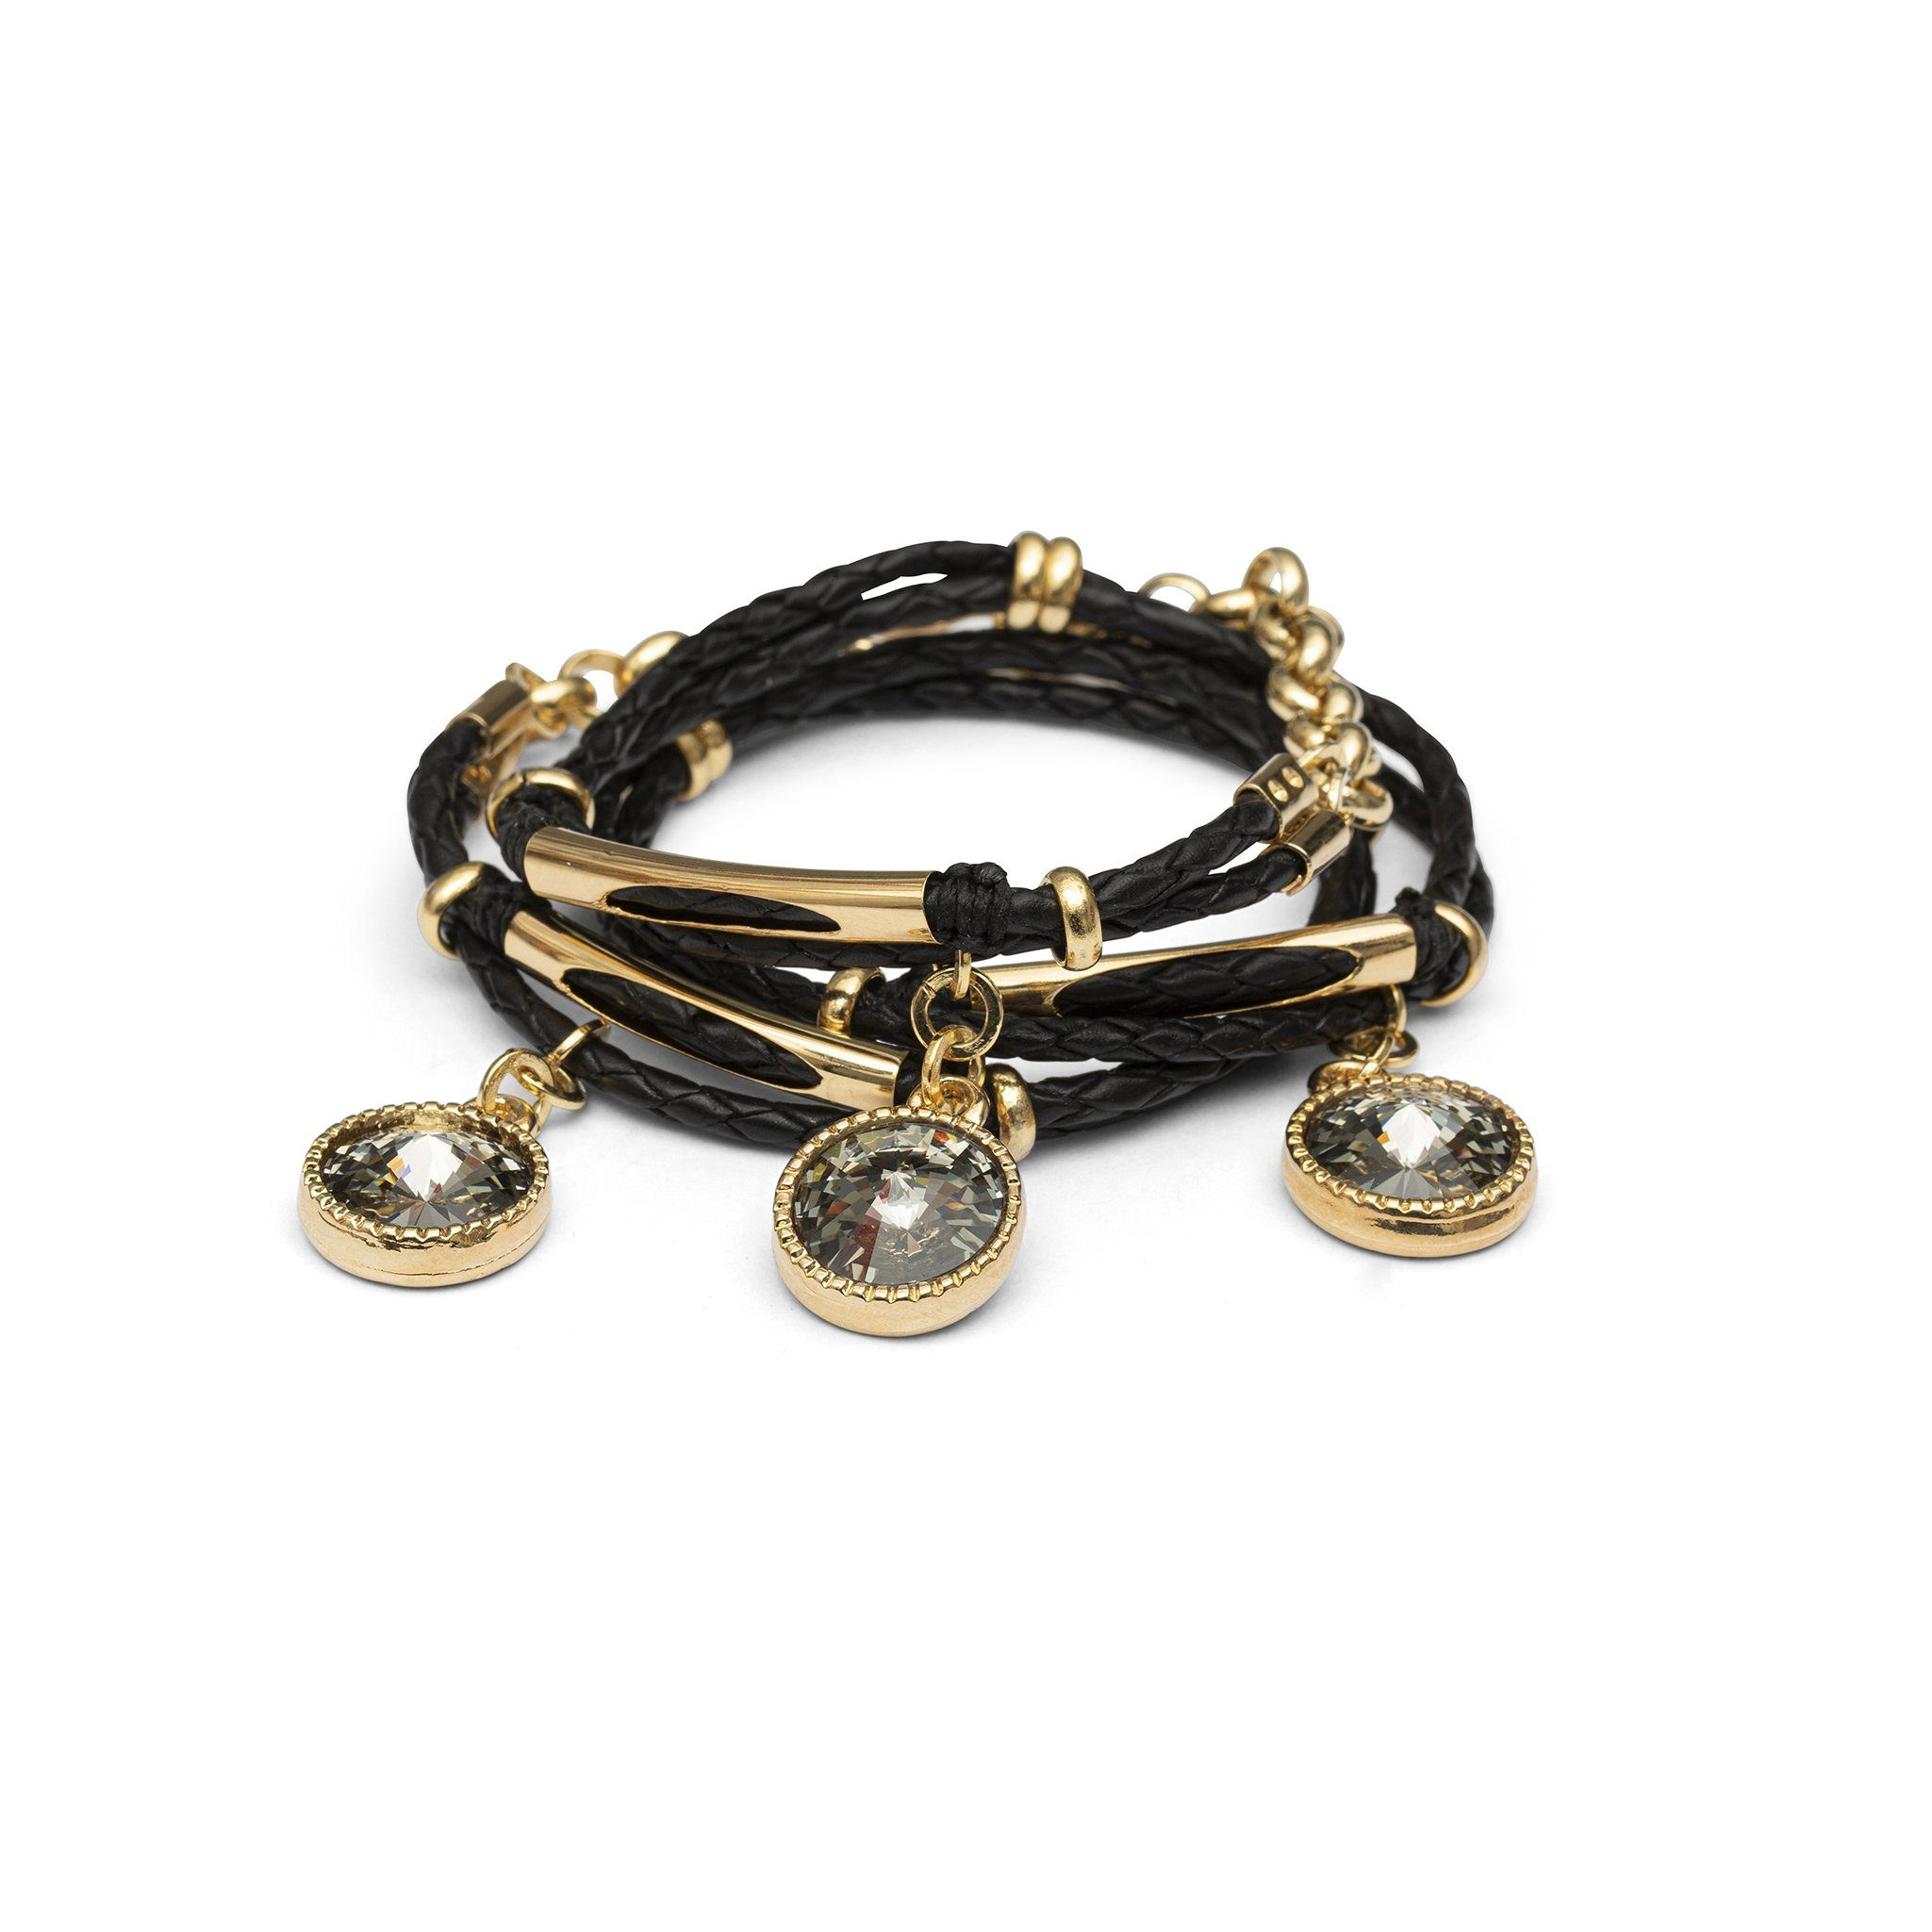 Miss Daydream Leather Bracelet - Black & Gold